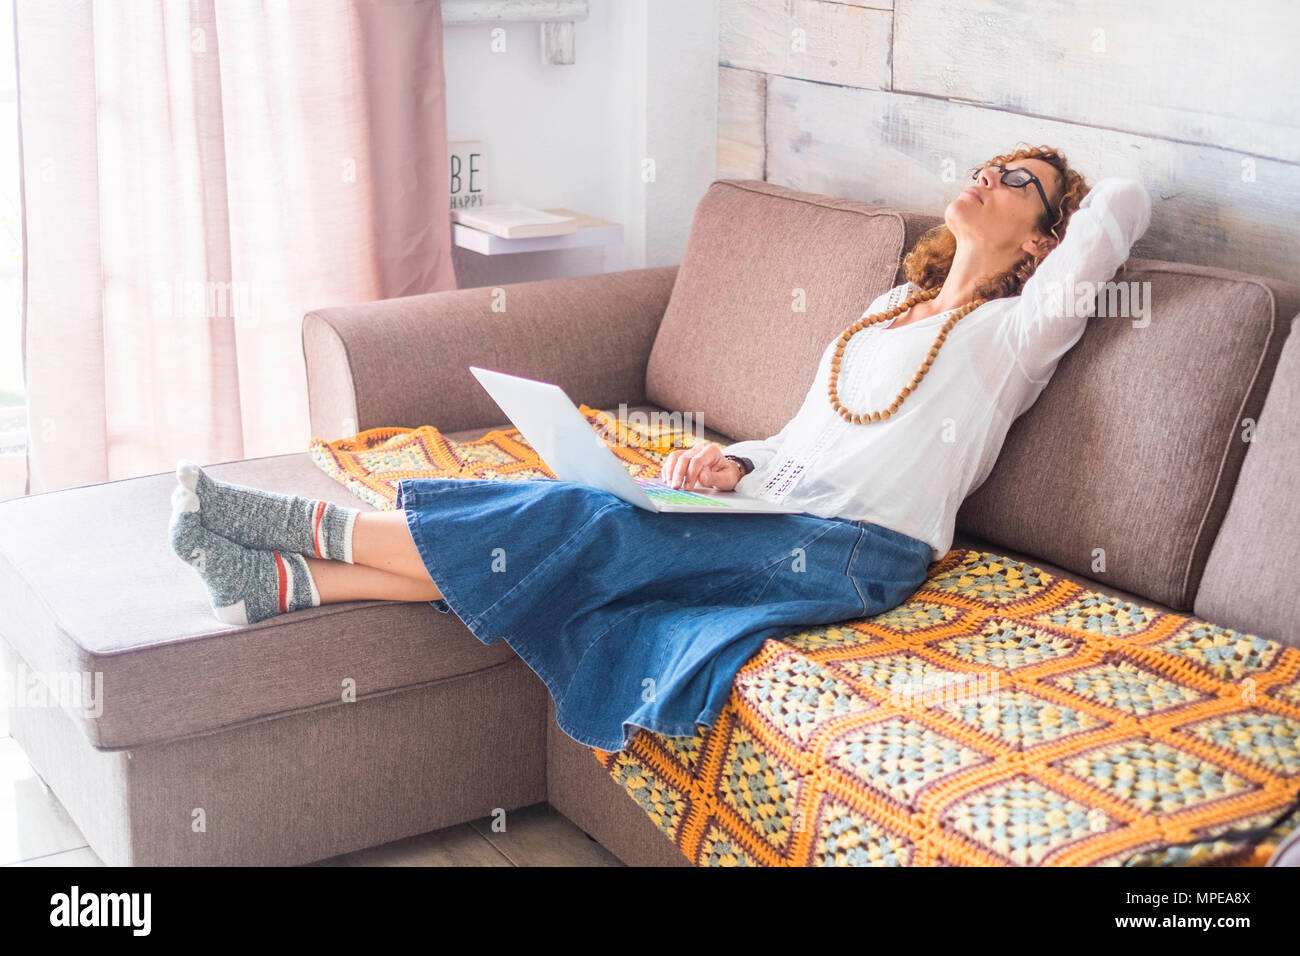 tired or full of thoughts caucasian lonely woman work at home with modern laptop colored keyword like artist way and lifestyle. lay down on the sofa l - Stock Image